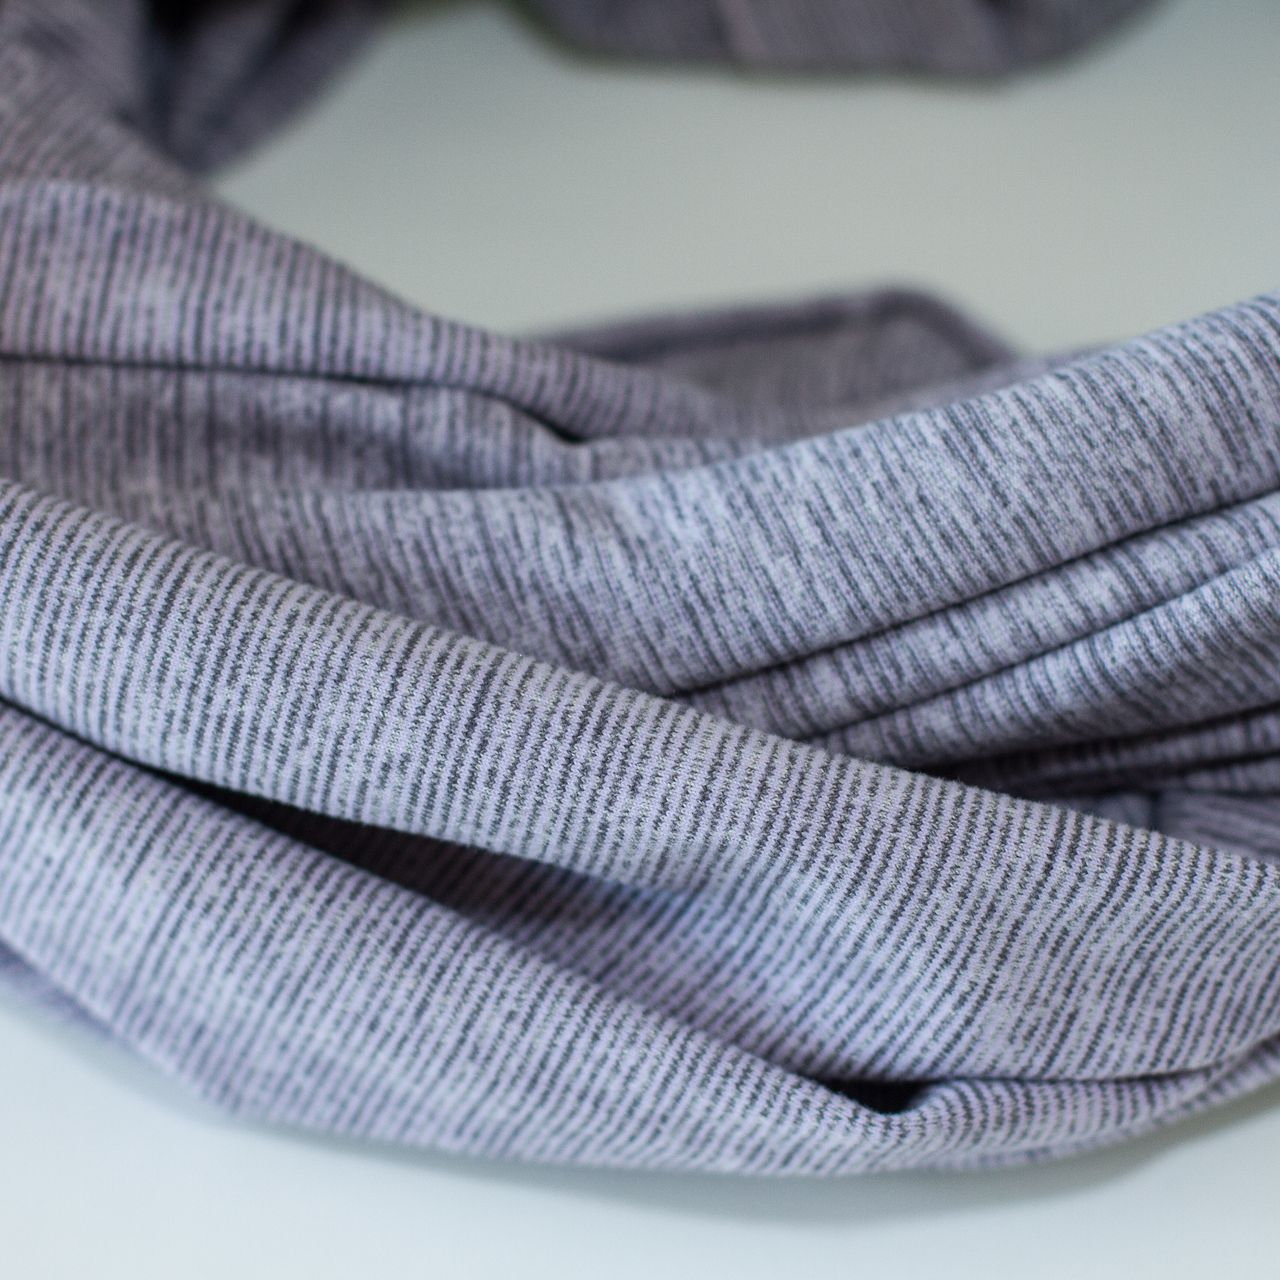 Lululemon Vinyasa Scarf - Lilac Heathered Coal Wee Stripe